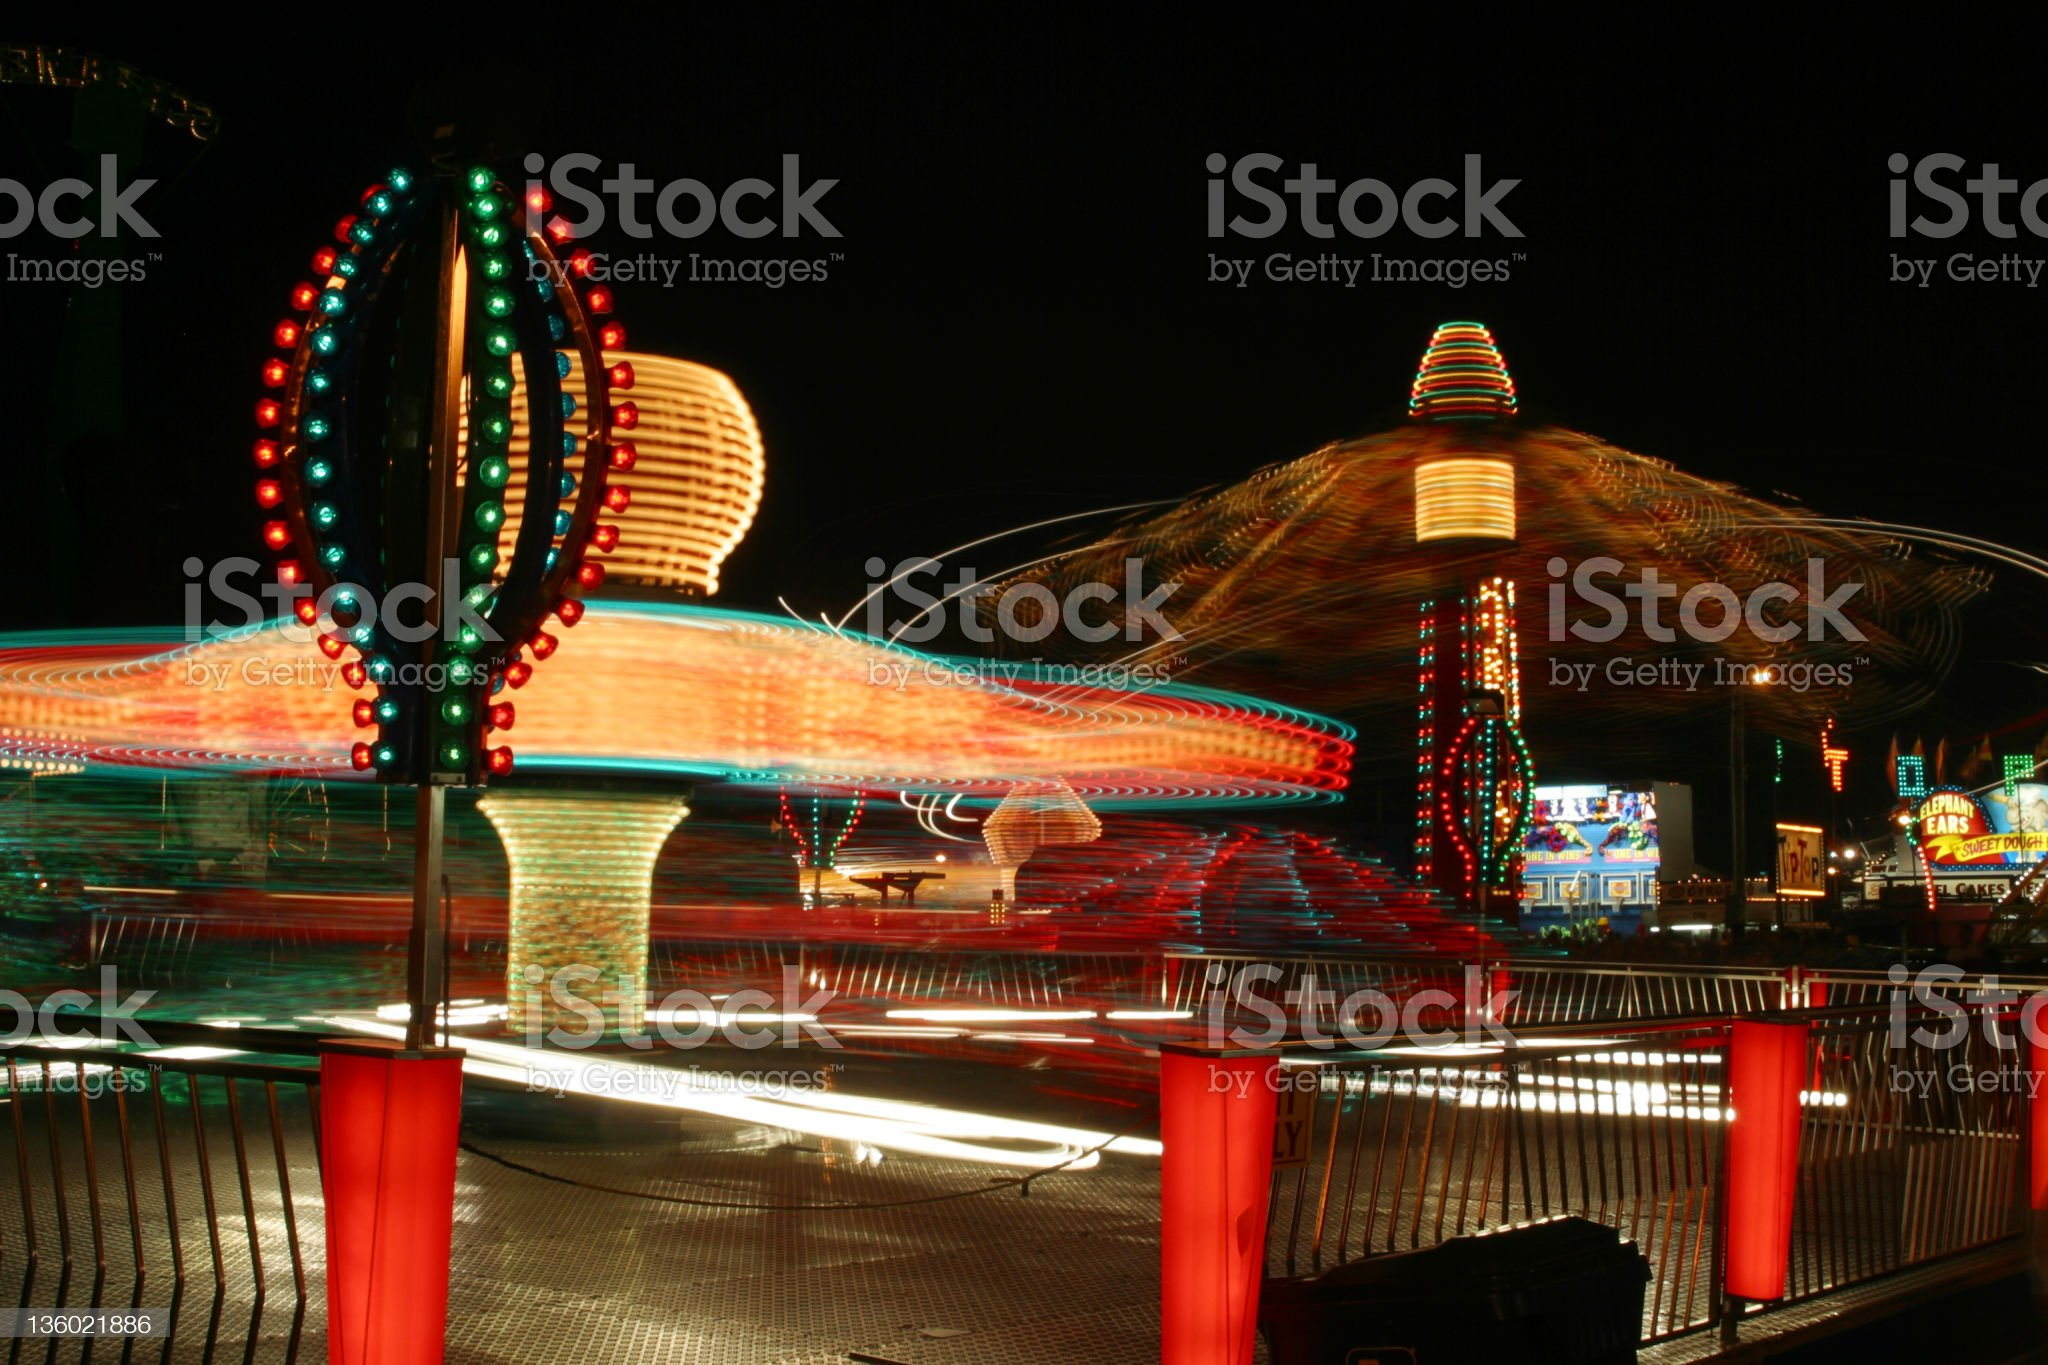 Carnival Rides 3 royalty-free stock photo